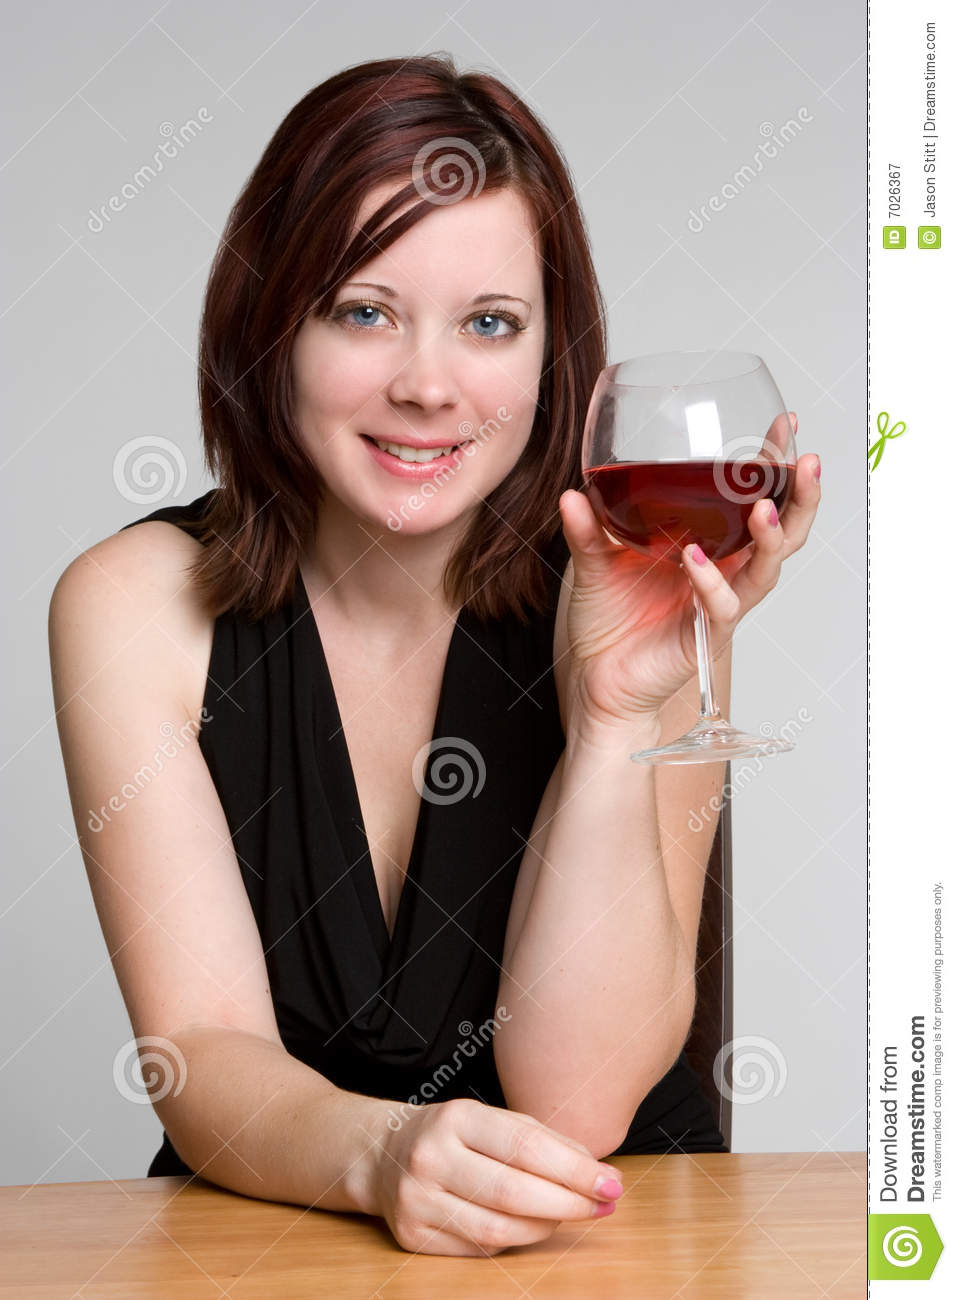 Woman Drinking Wine Royalty Free Stock Photography - Image ...